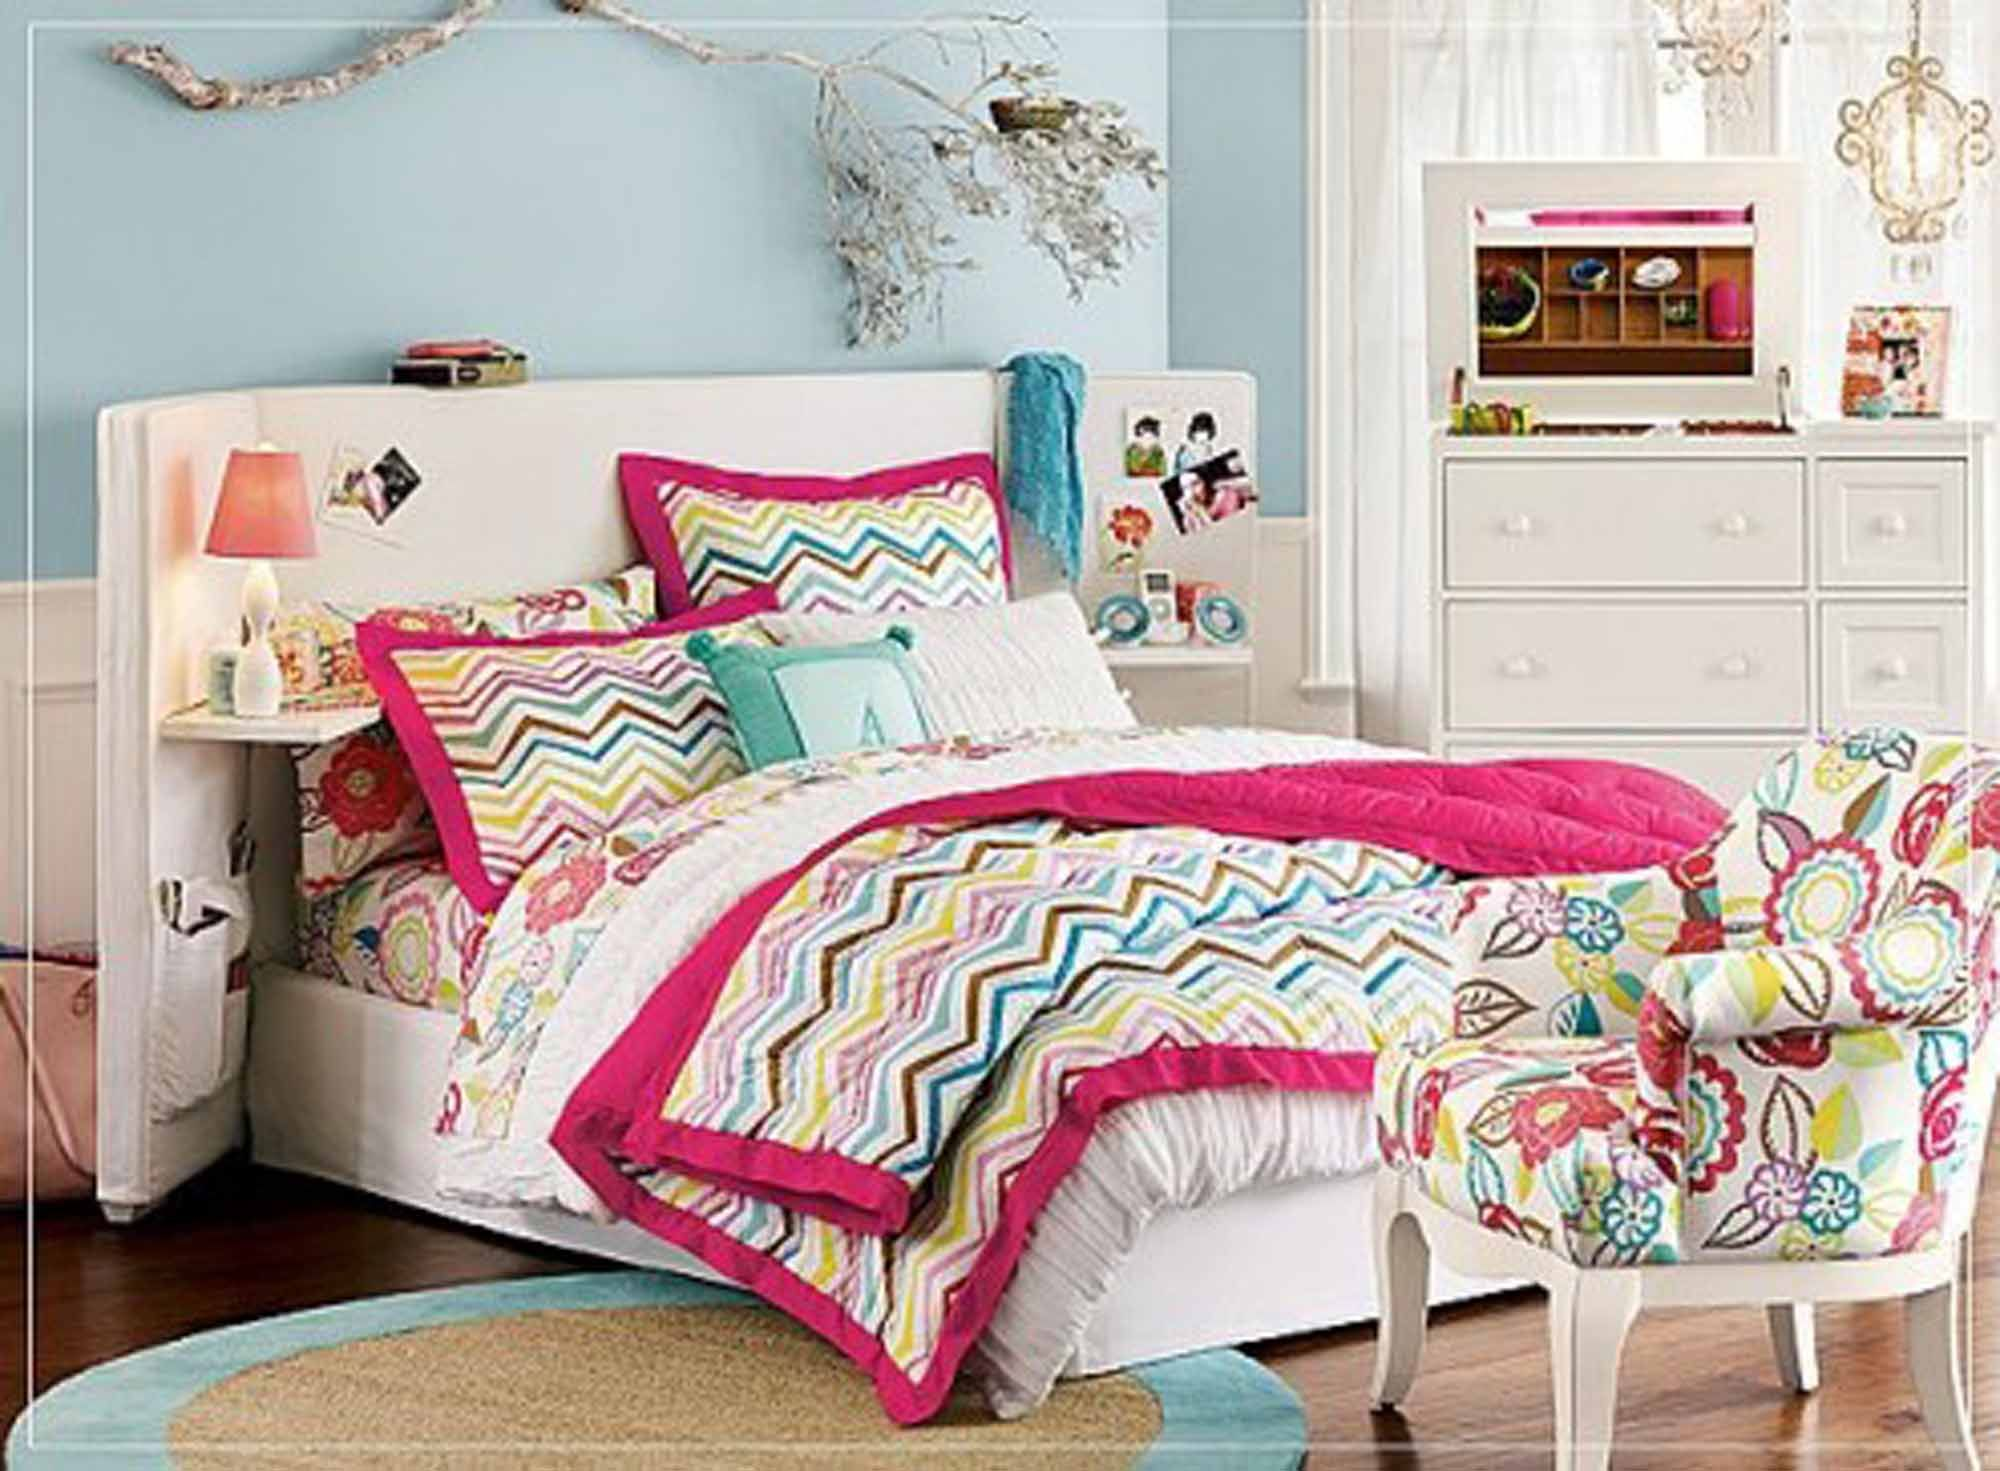 Beautiful teenage girl bedroom decorating idea with queen bed frame and floating shelves and colorful chevron